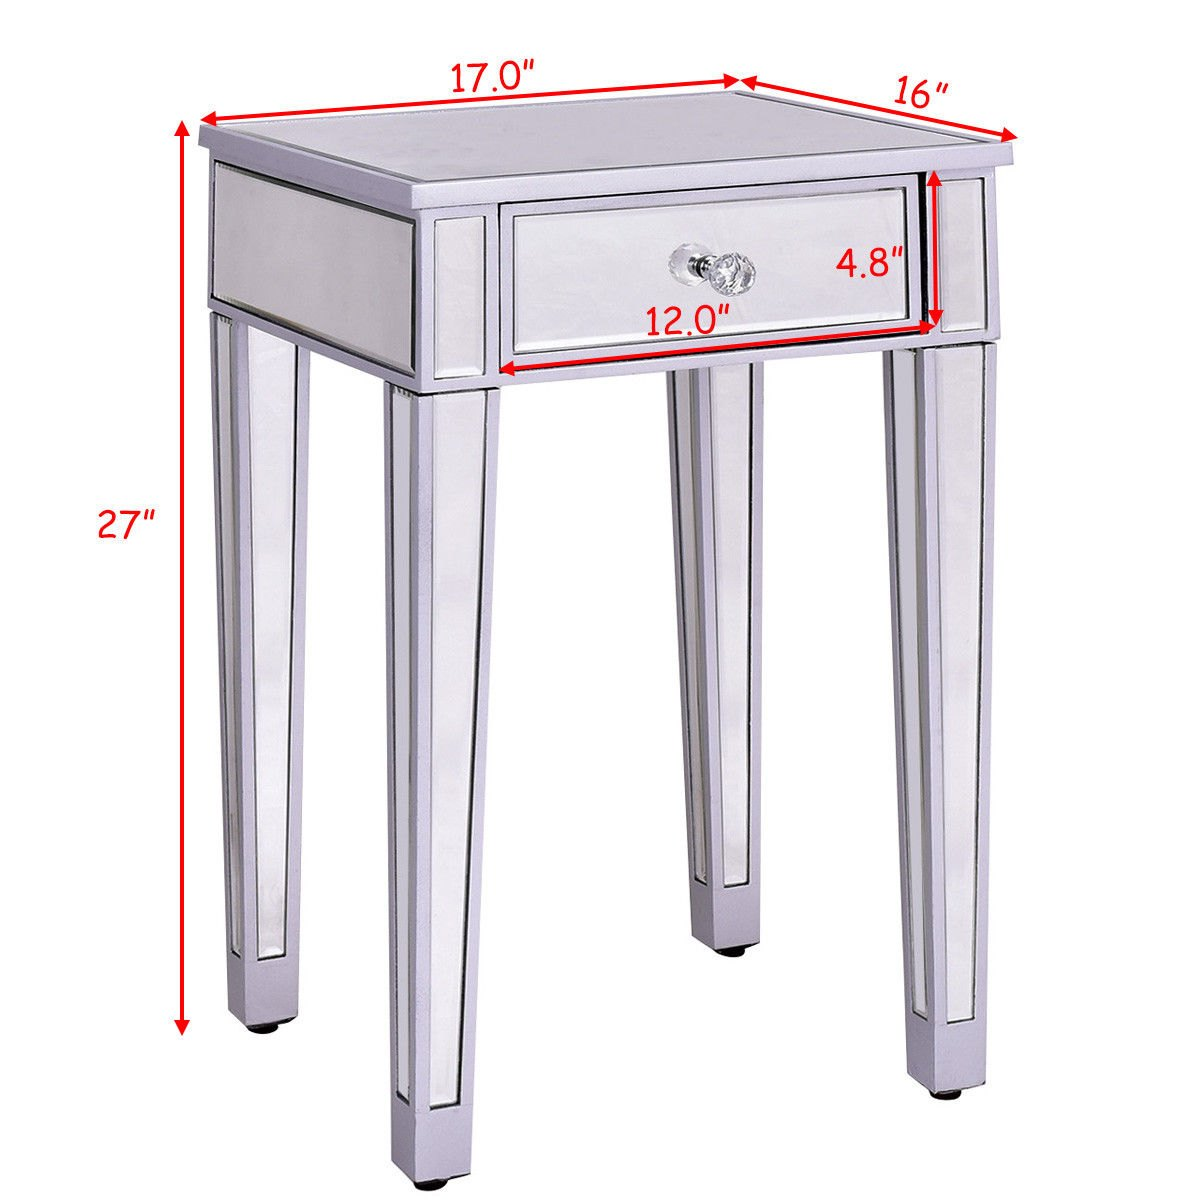 way mirrored accent table nightstand end bedside glass storage cabinet drawer narrow black modern coffee designs armoire style couch little kid chairs mosaic garden furniture sets